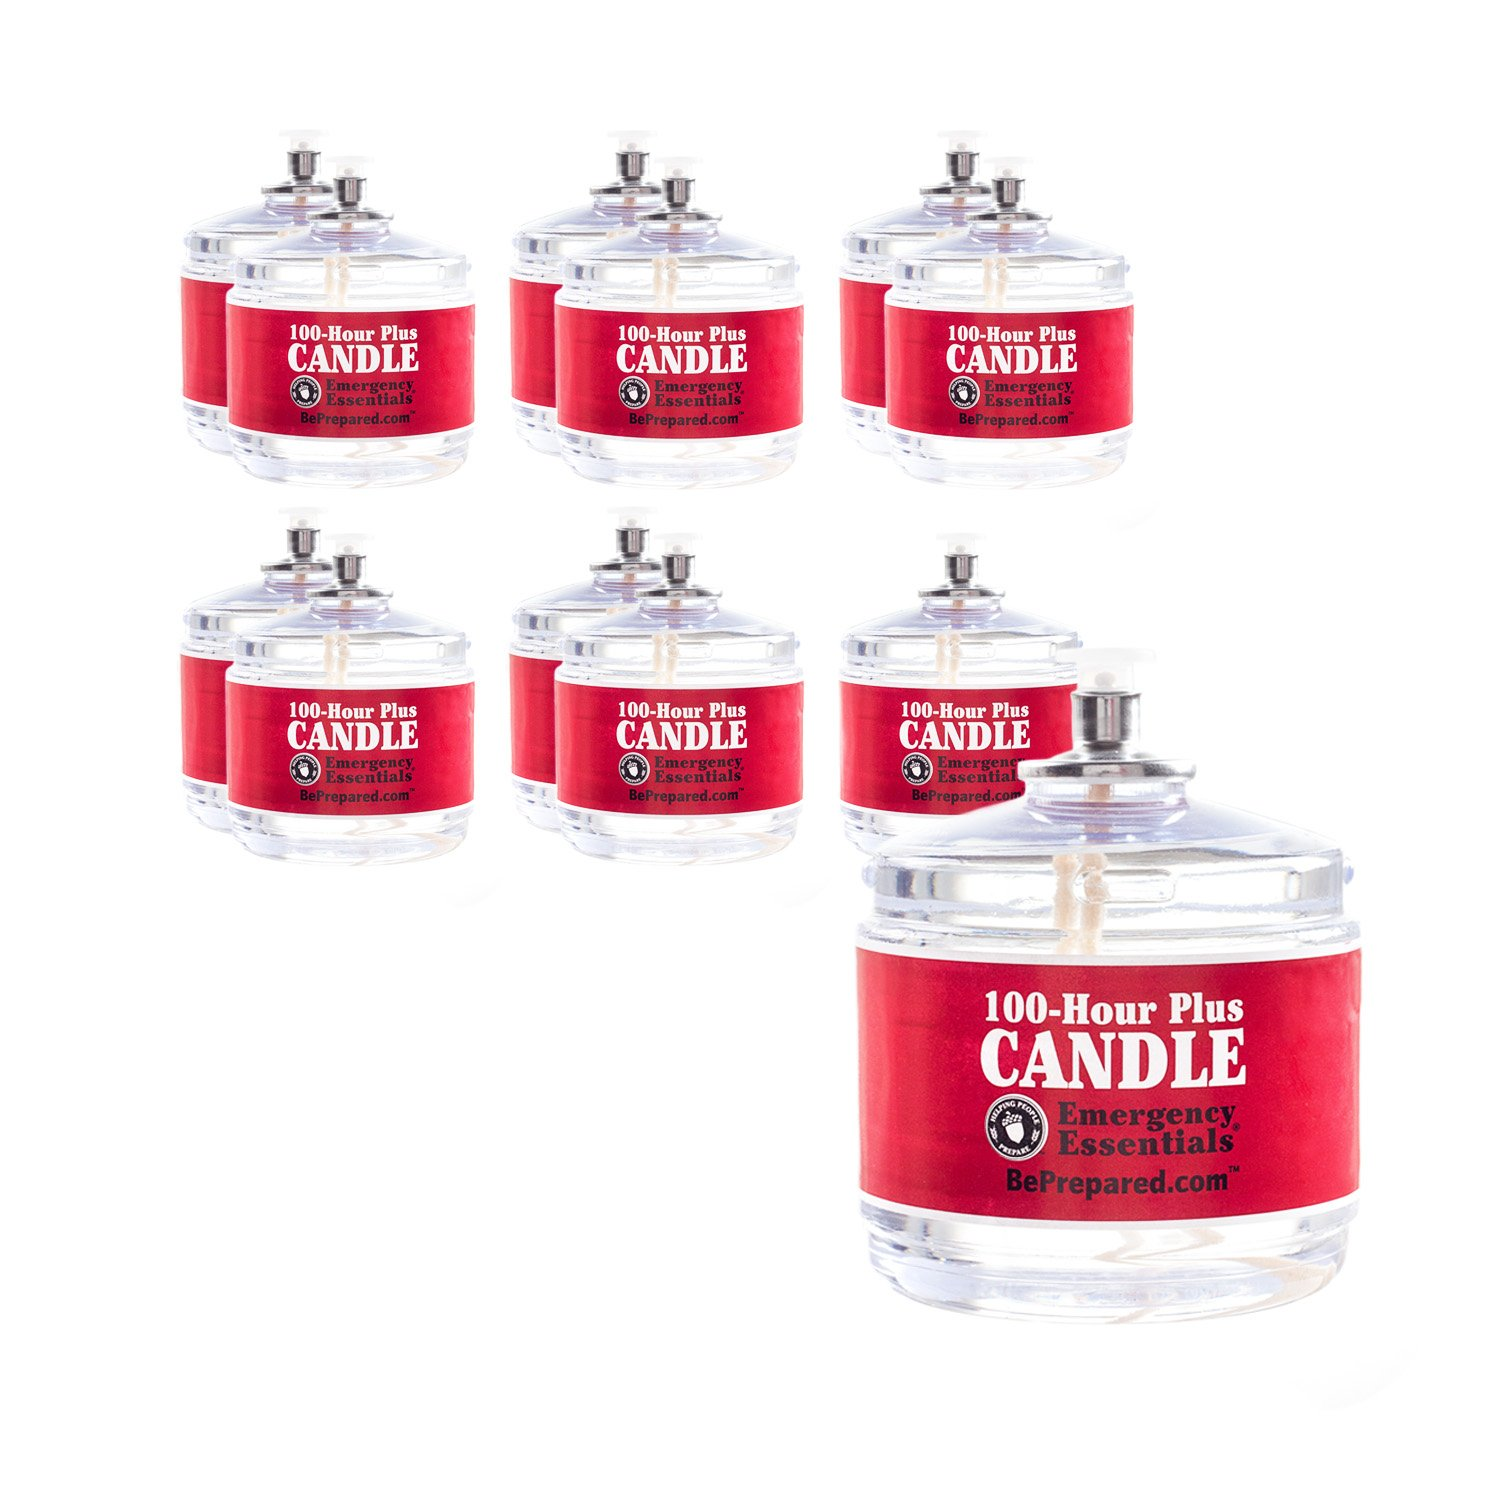 100 Hour Plus Emergency Candle, Clear Mist - Set of 12 Survival Candles